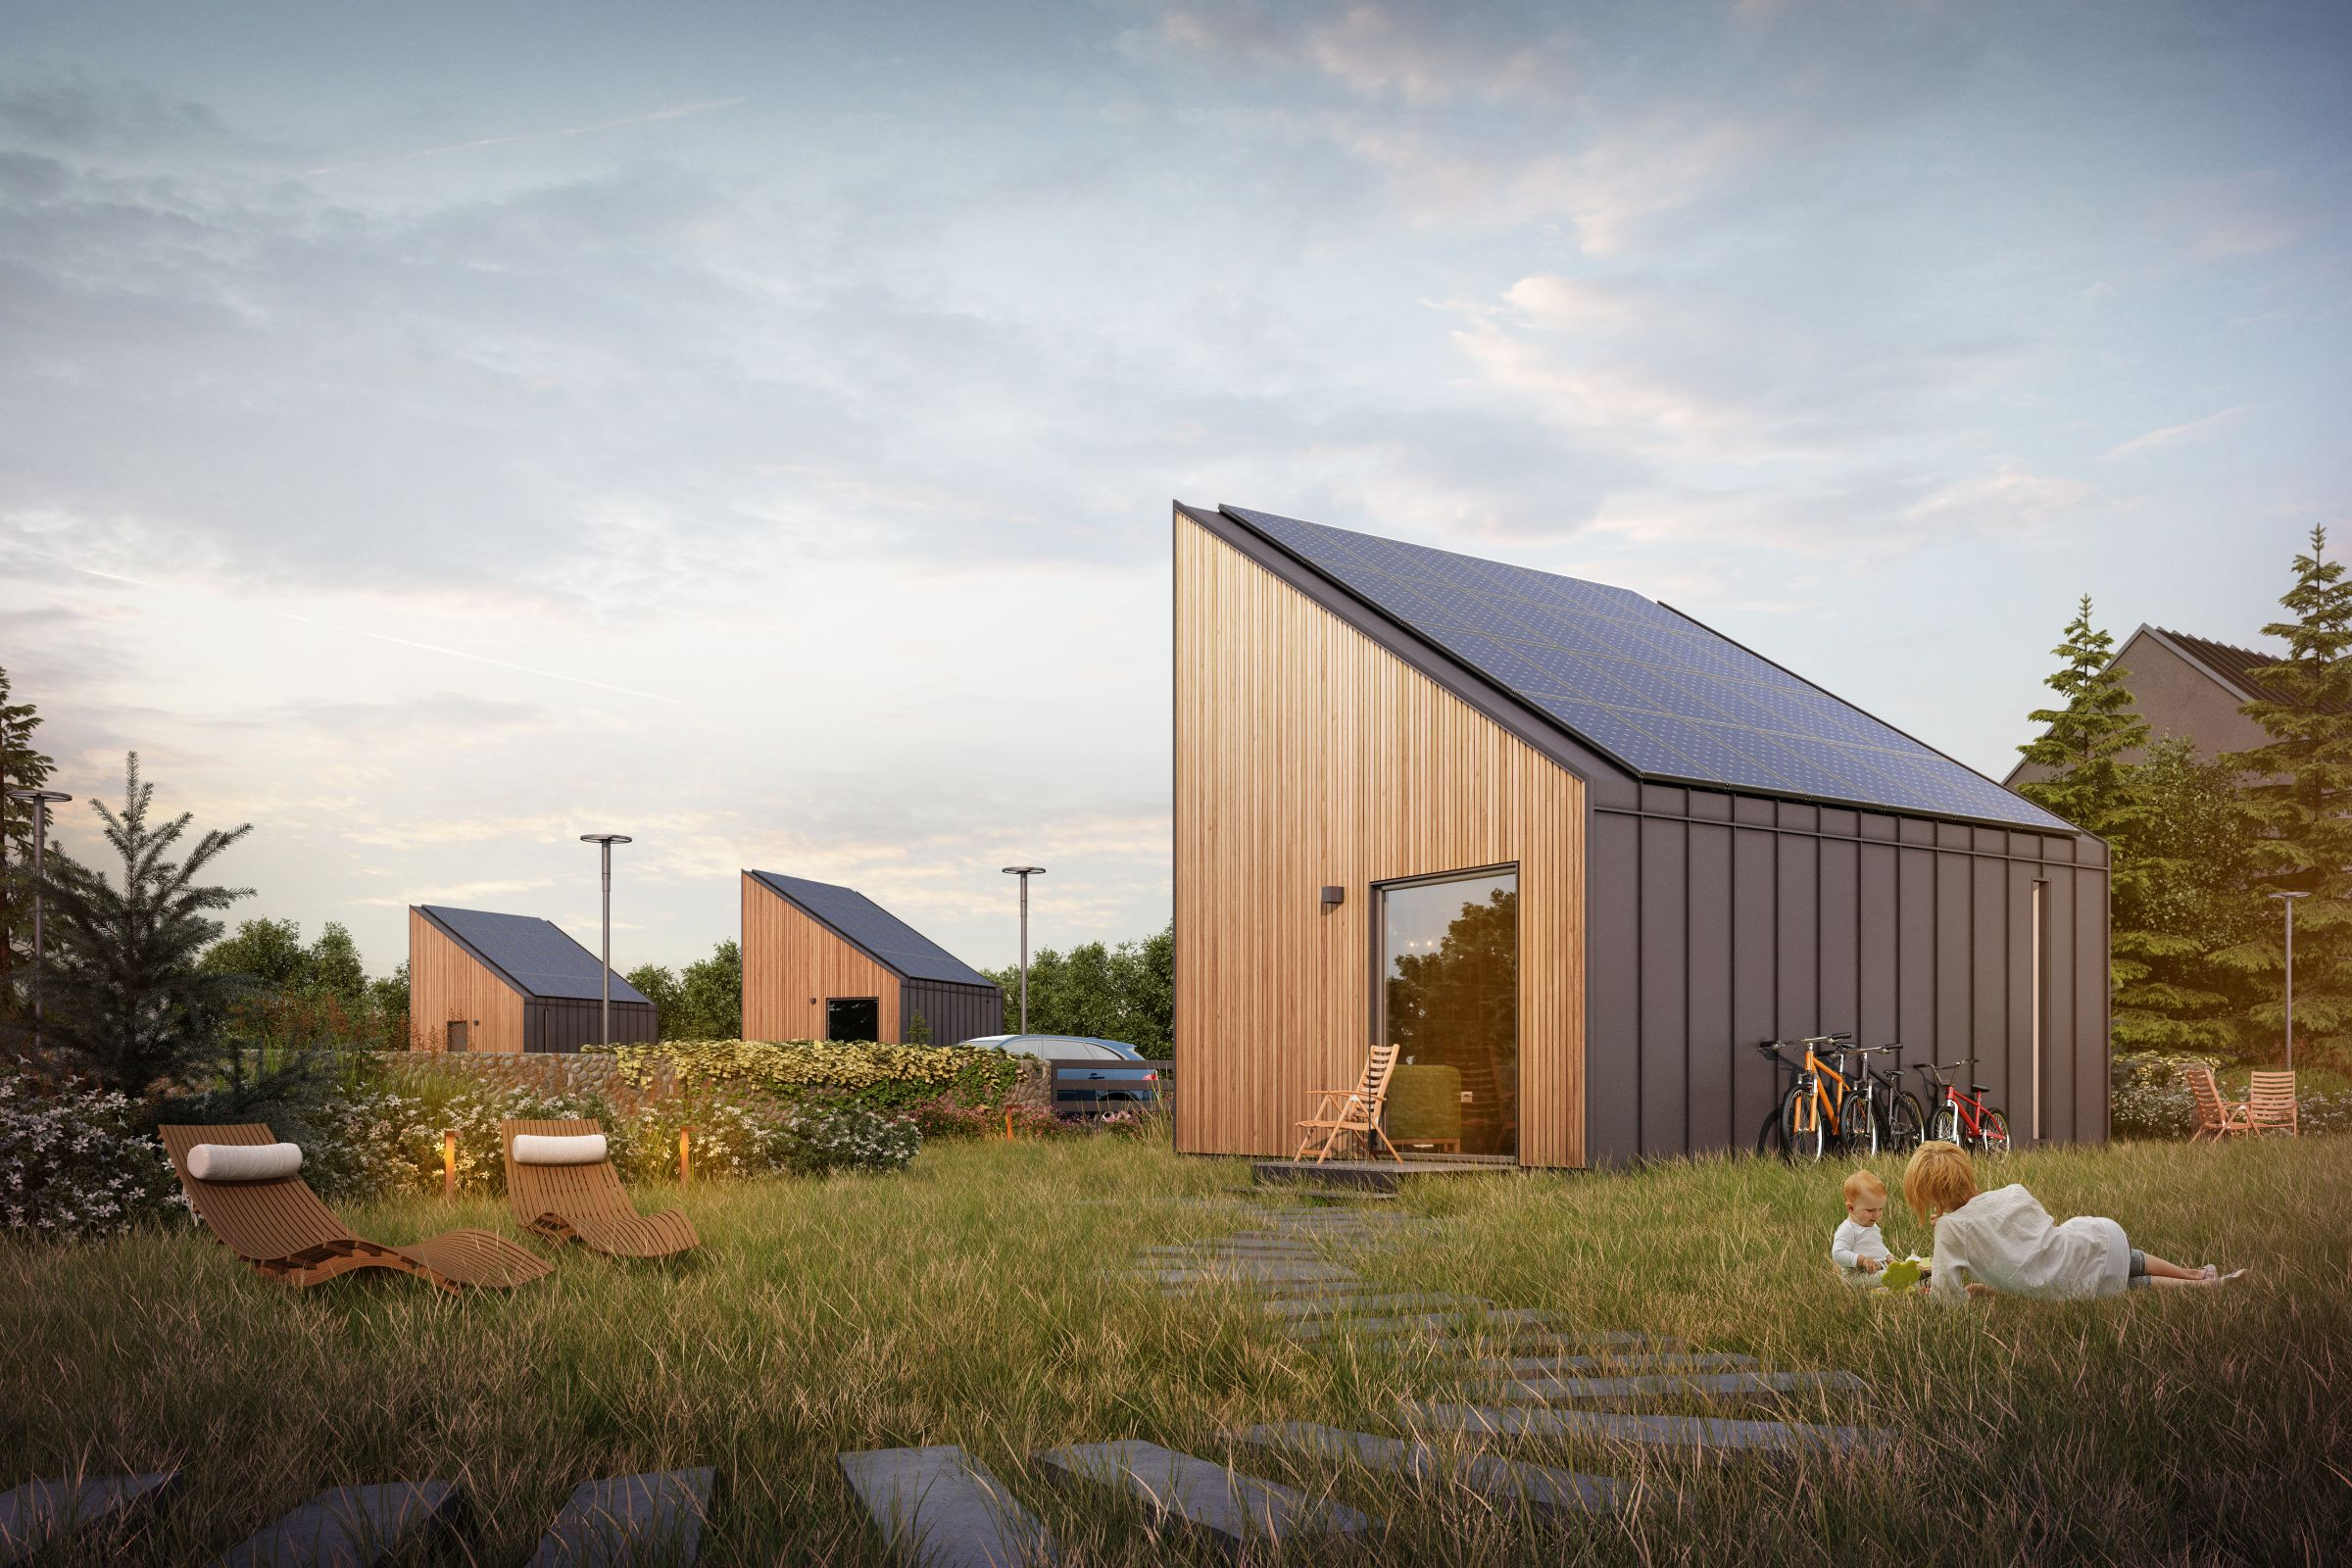 Solar panels help the SOLACE flat-pack houses produce more energy than needed.